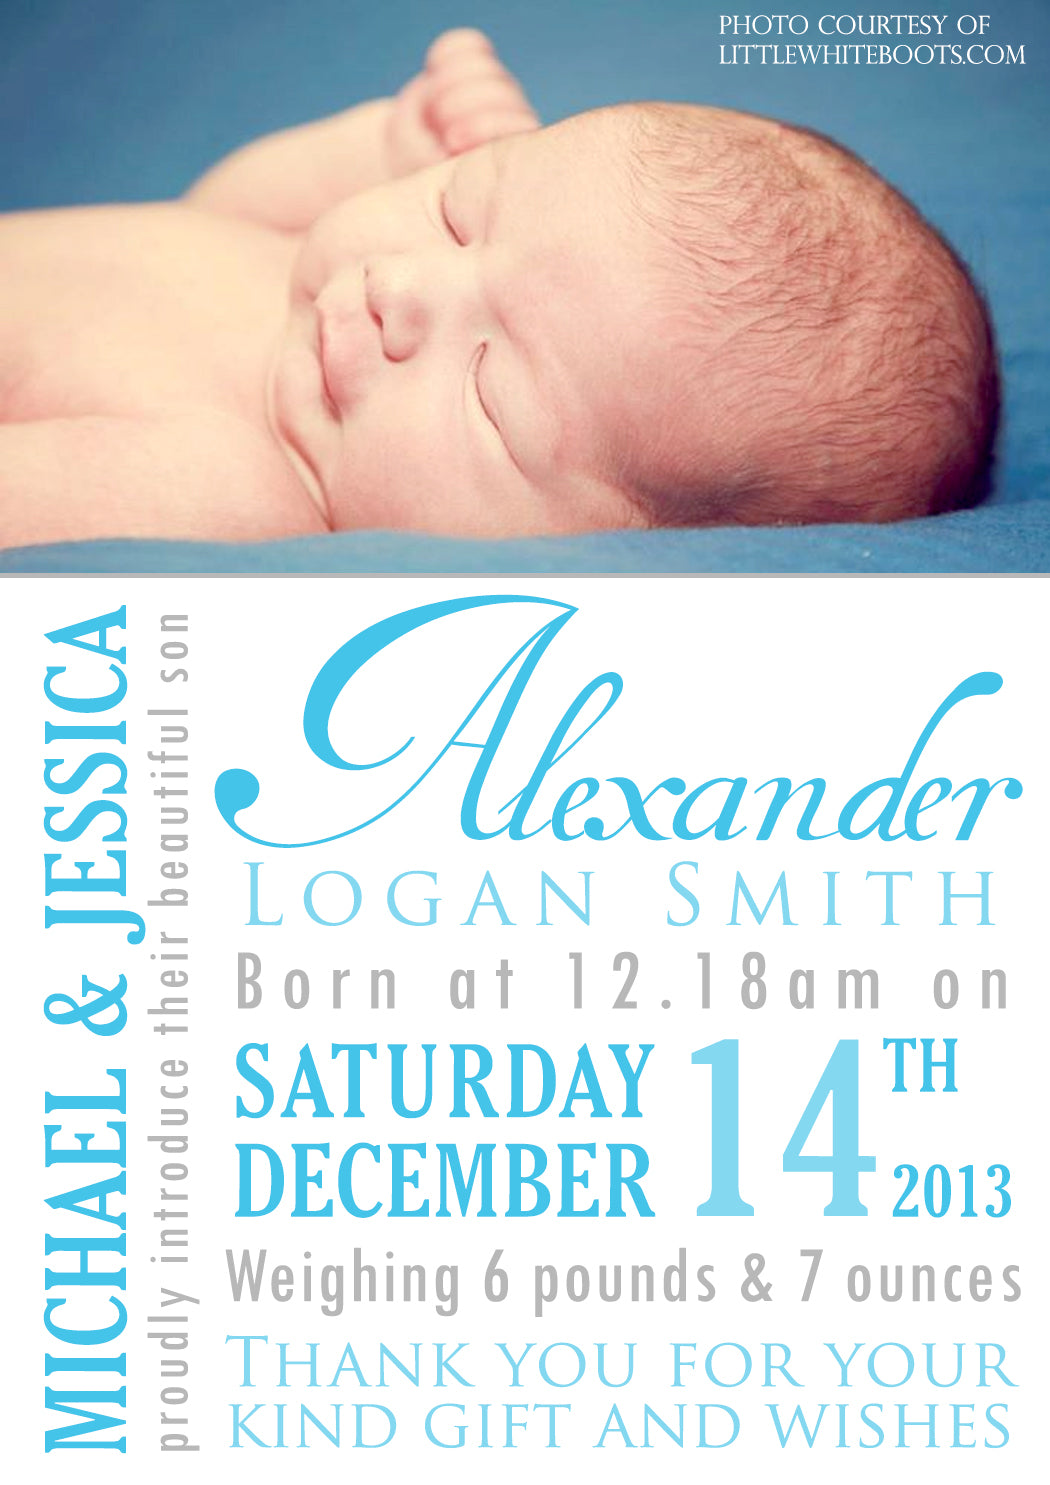 wordart thank you message note new born baby birth announcement